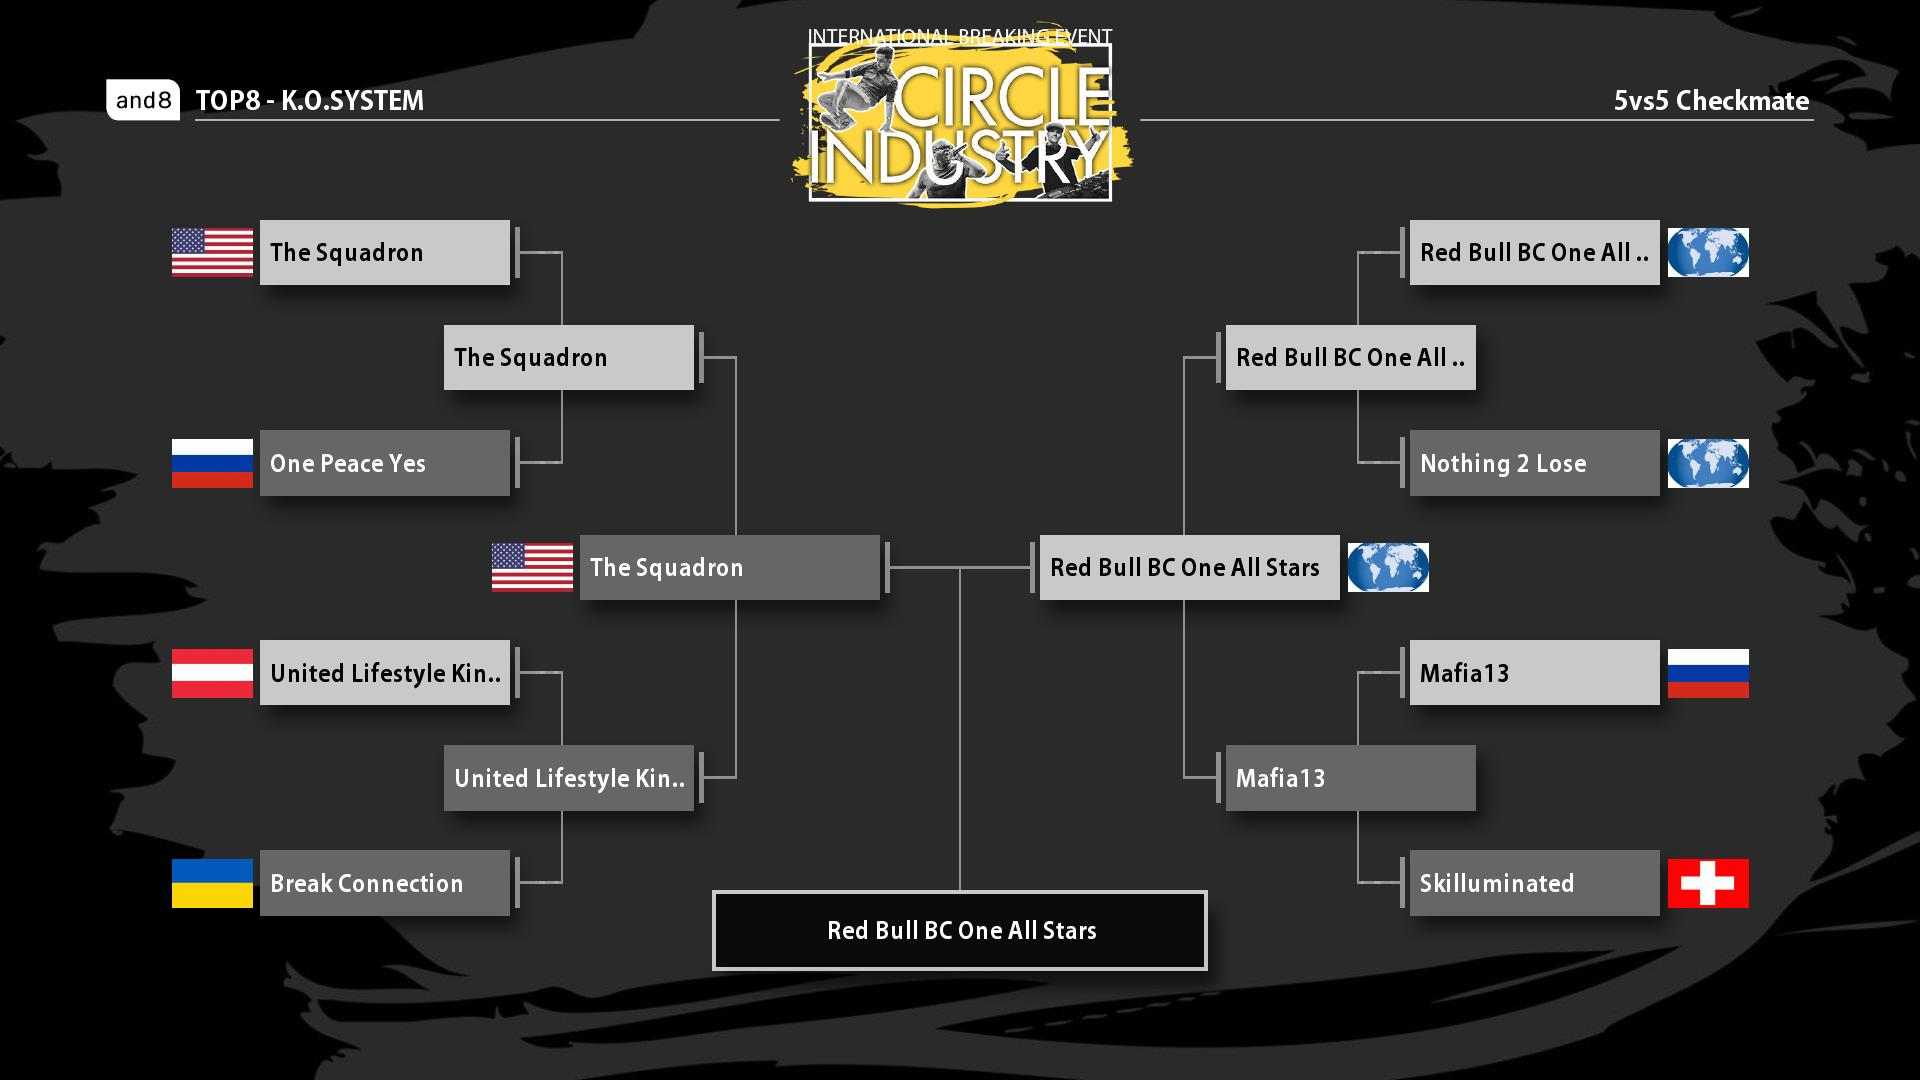 The Battle Bracket of Checkmate 2019